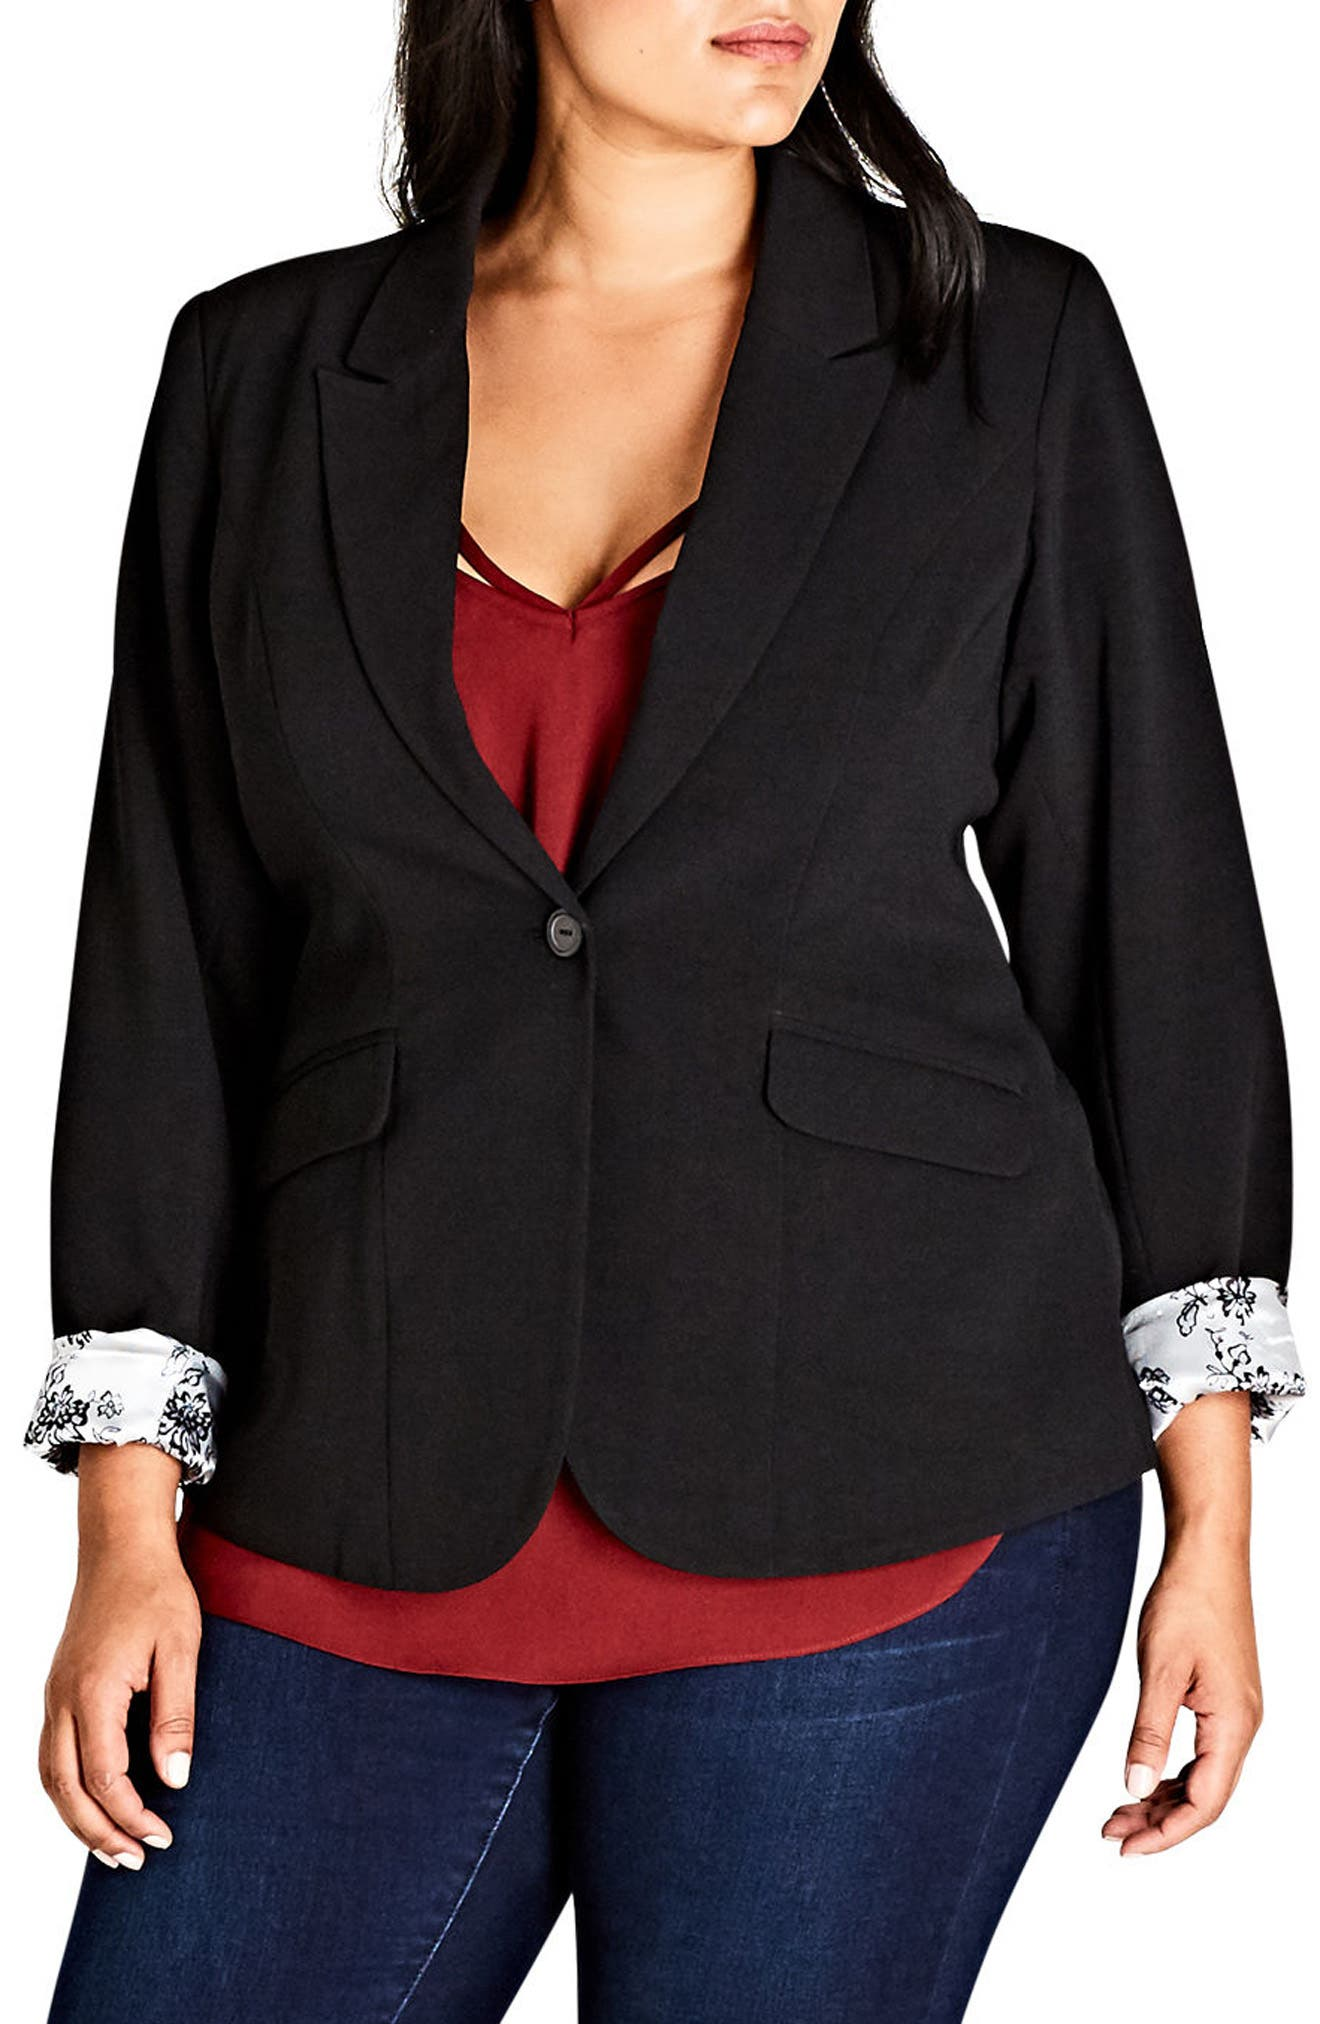 Alternate Image 1 Selected - City Chic Rolled Cuff Jacket (Plus Size)